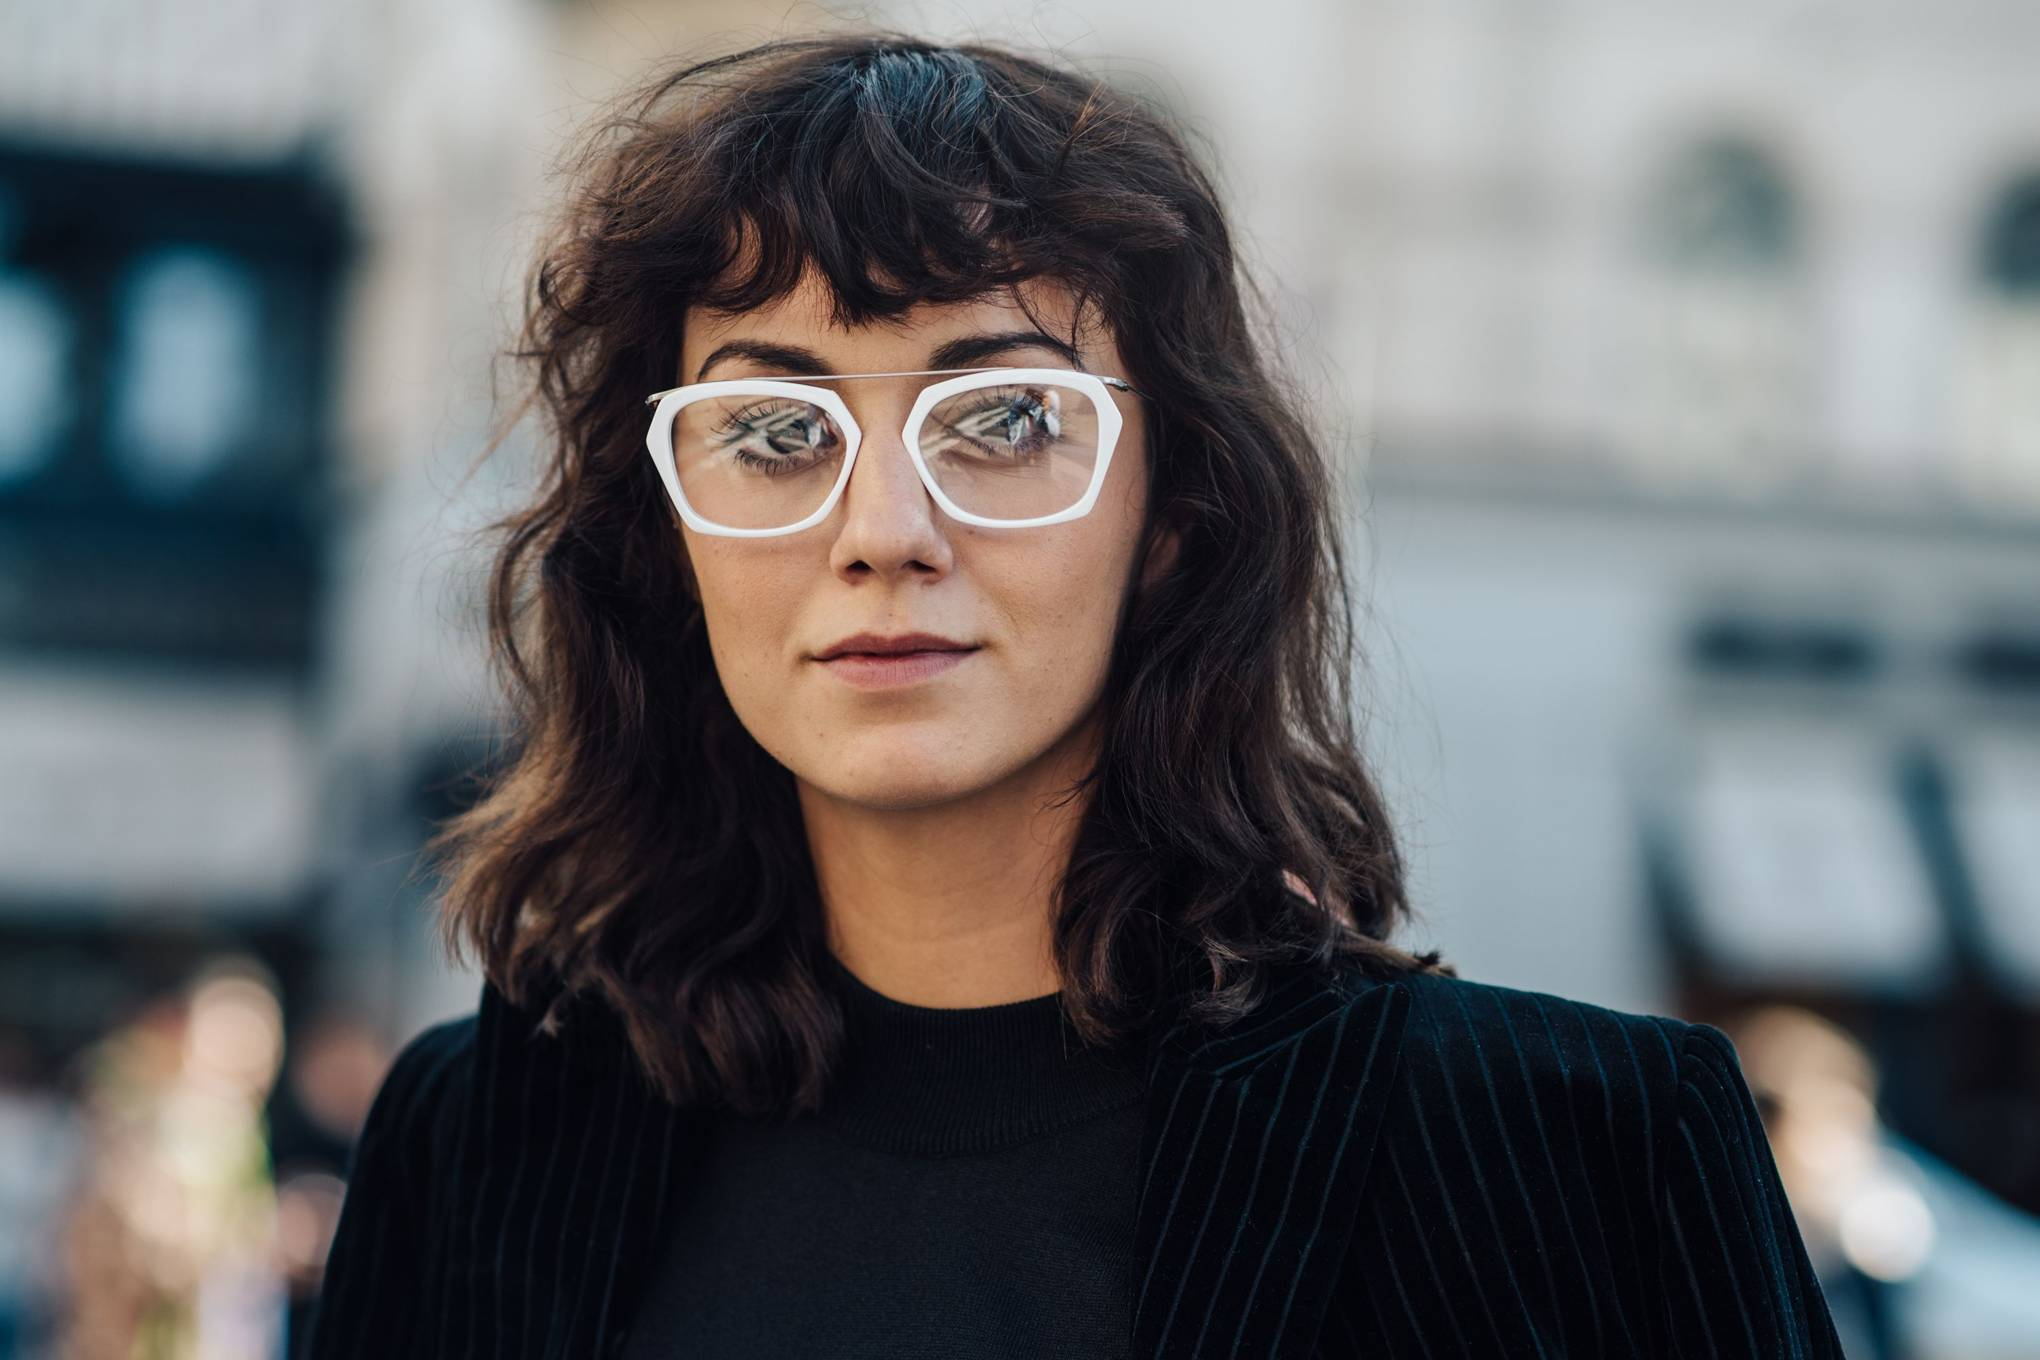 ac3e828e1249 The Glasses Guide: Vogue Charts The Womens Glasses Trends | British Vogue